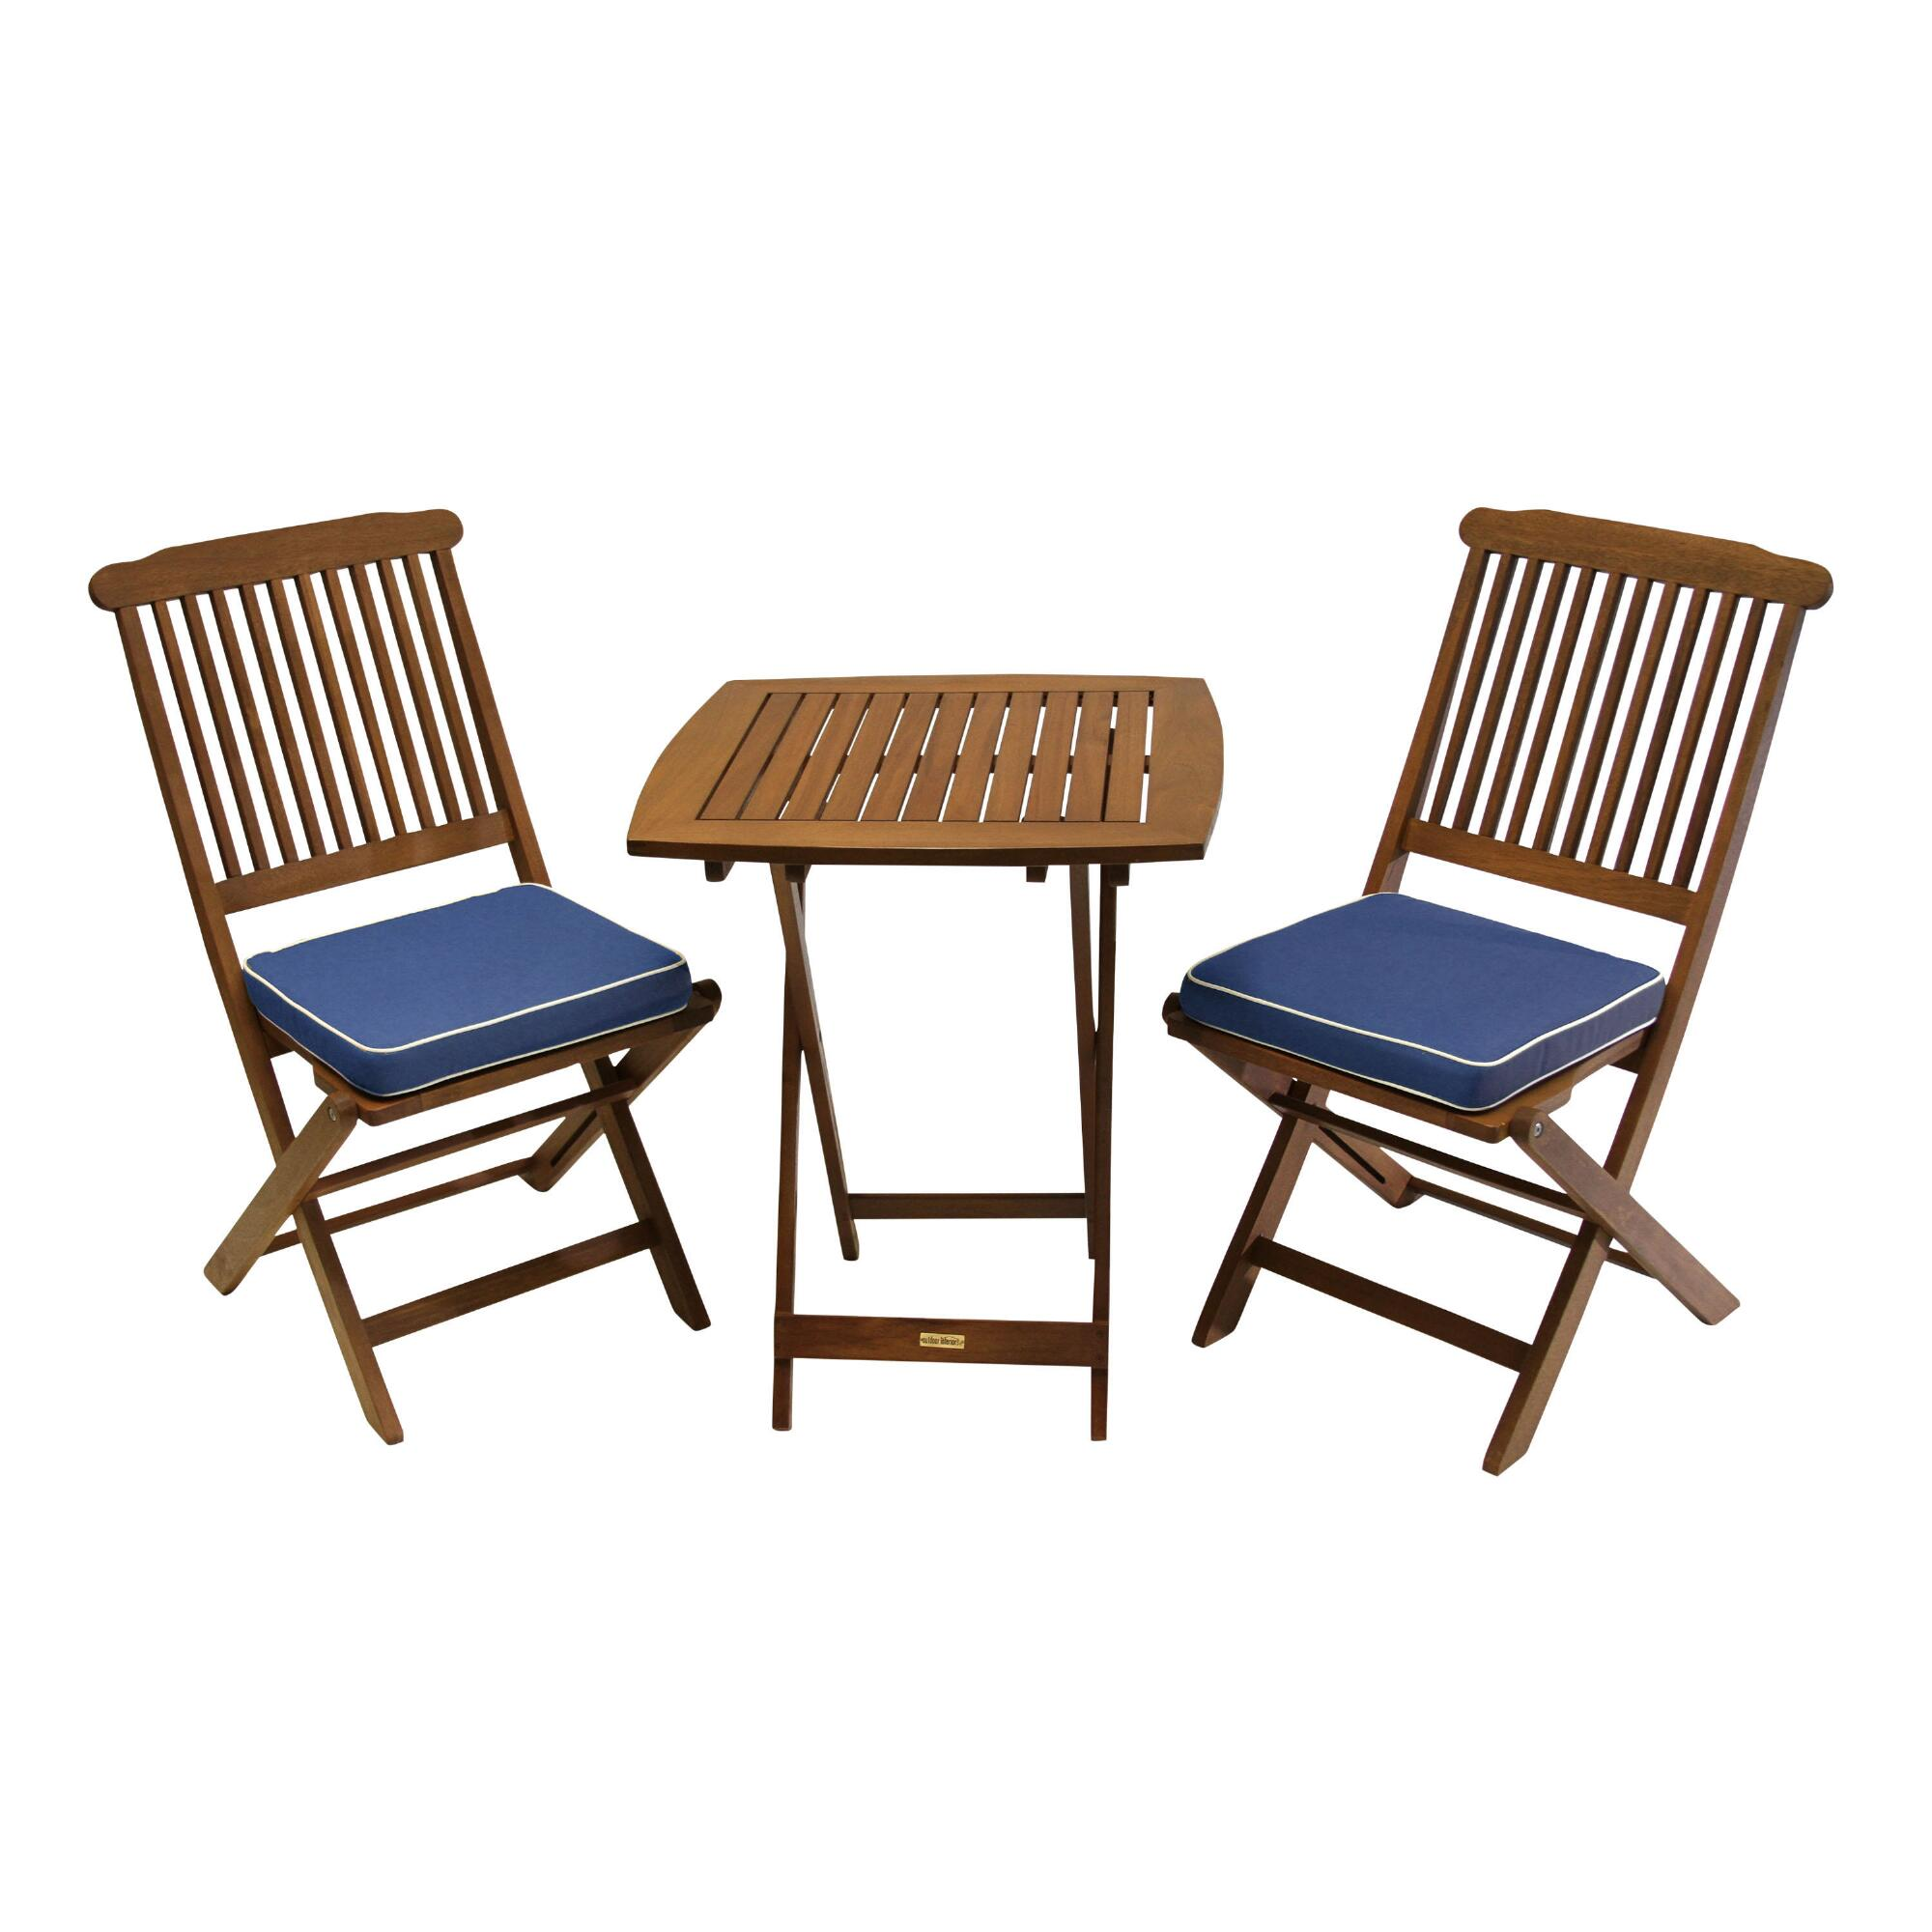 Wood Cavallo 3 Piece Outdoor Patio Bistro Set with Blue Cushions by World Market